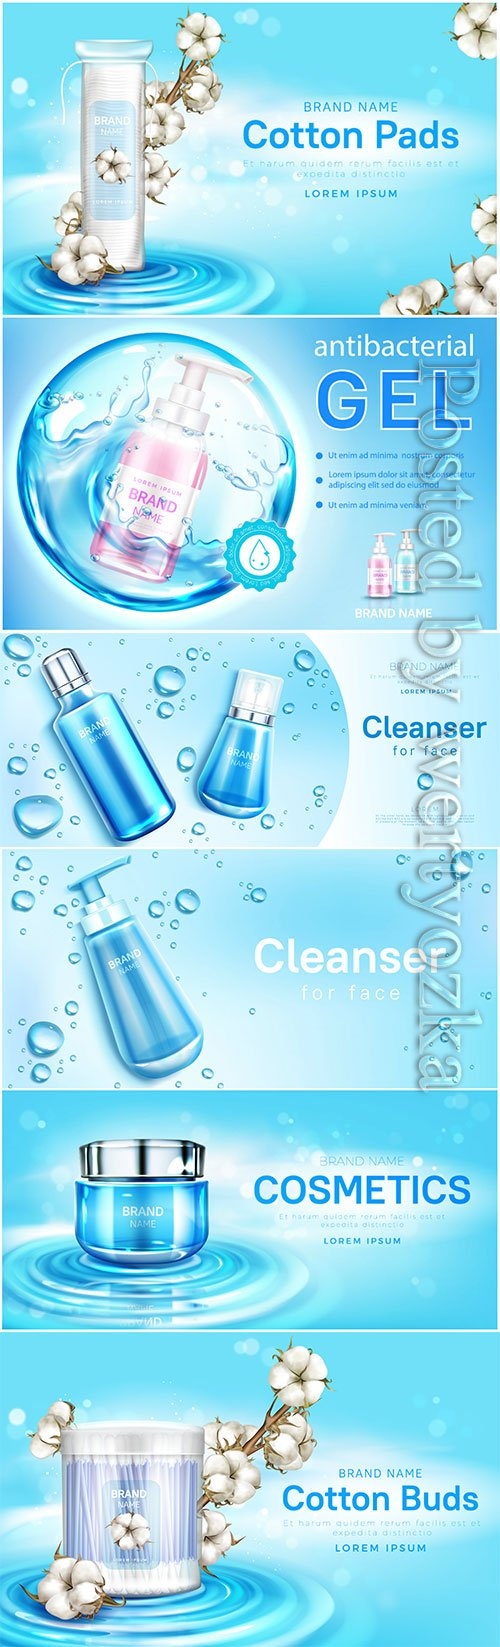 Cosmetic care products advertising poster in vector